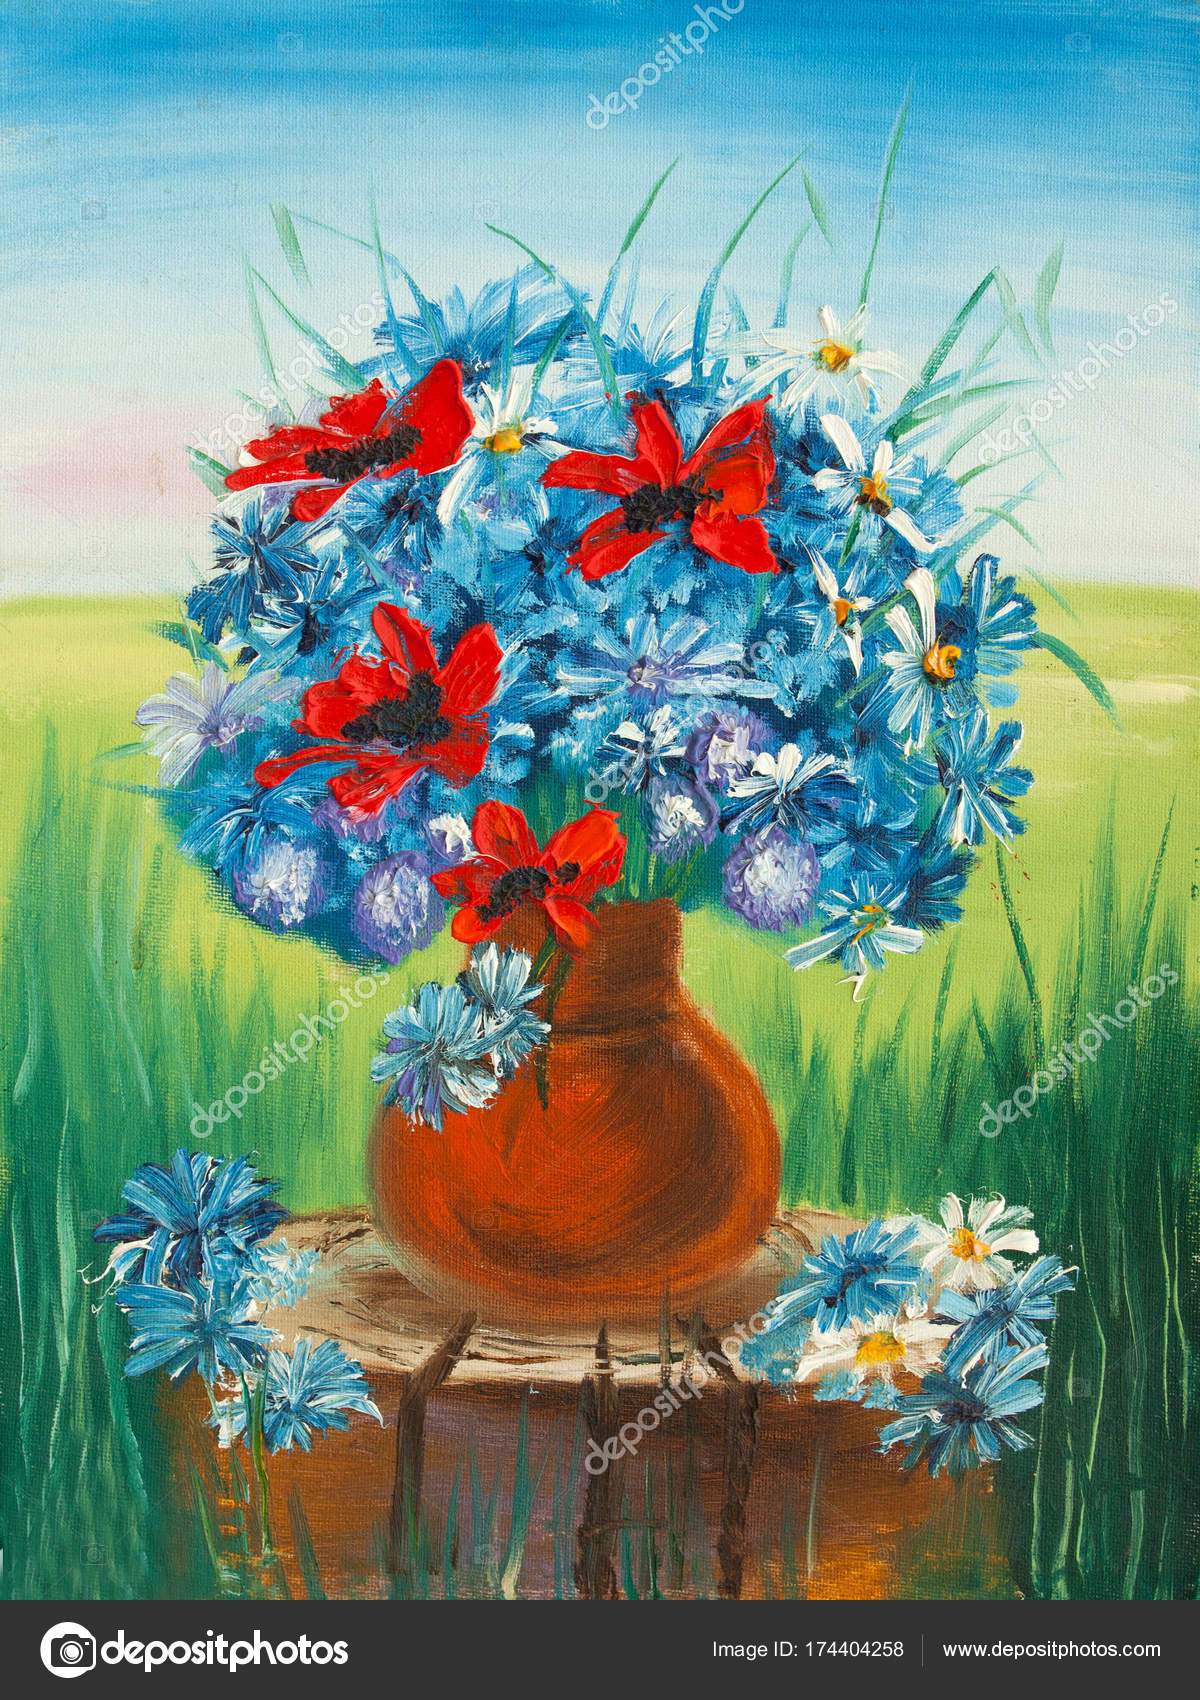 Beautiful flowers in vase oil painting on canvas stock photo beautiful flowers in vase oil painting on canvas stock photo izmirmasajfo